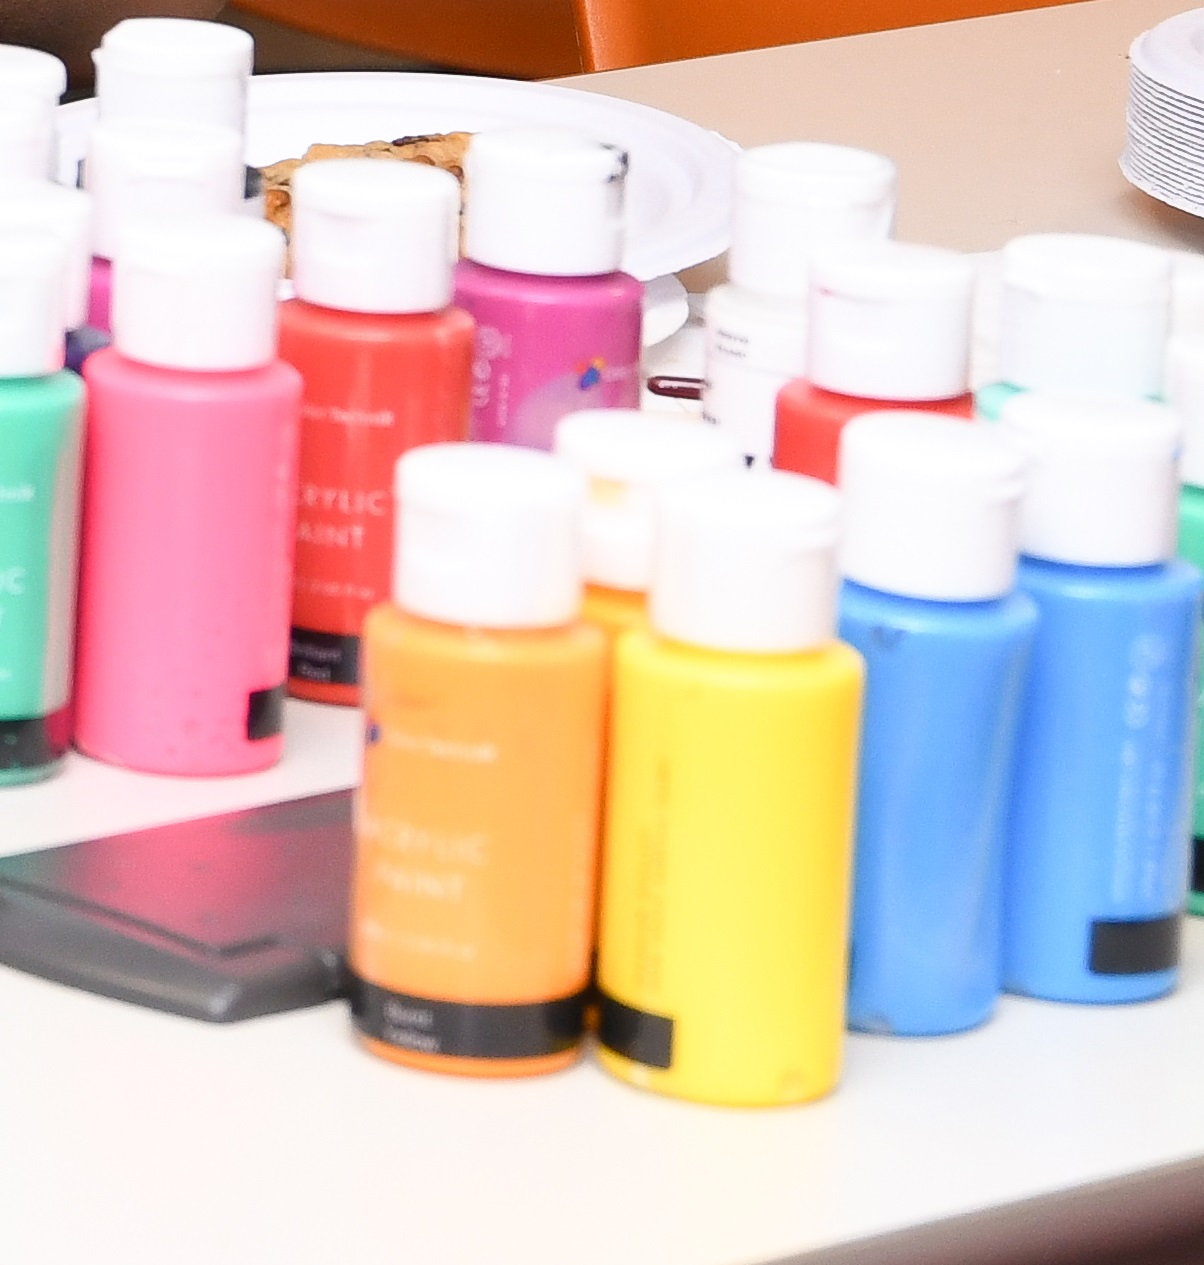 Small bottles of paint in various colors